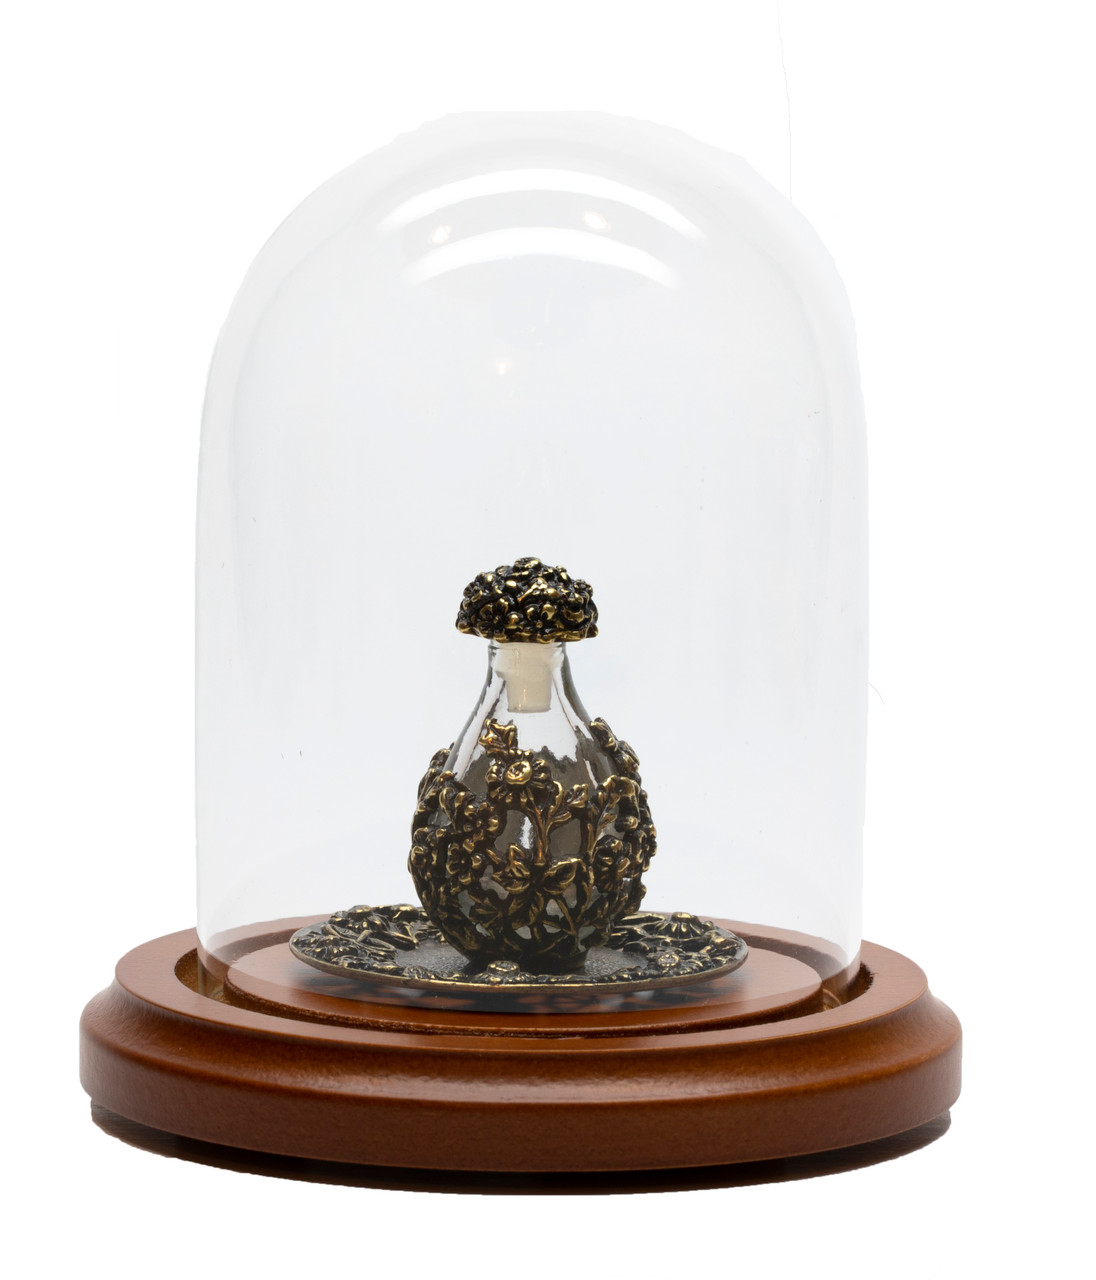 Brass with Clear Glass Victorian Tear Bottle - Optional Mini Dome and Optional Tray - Sold Separately